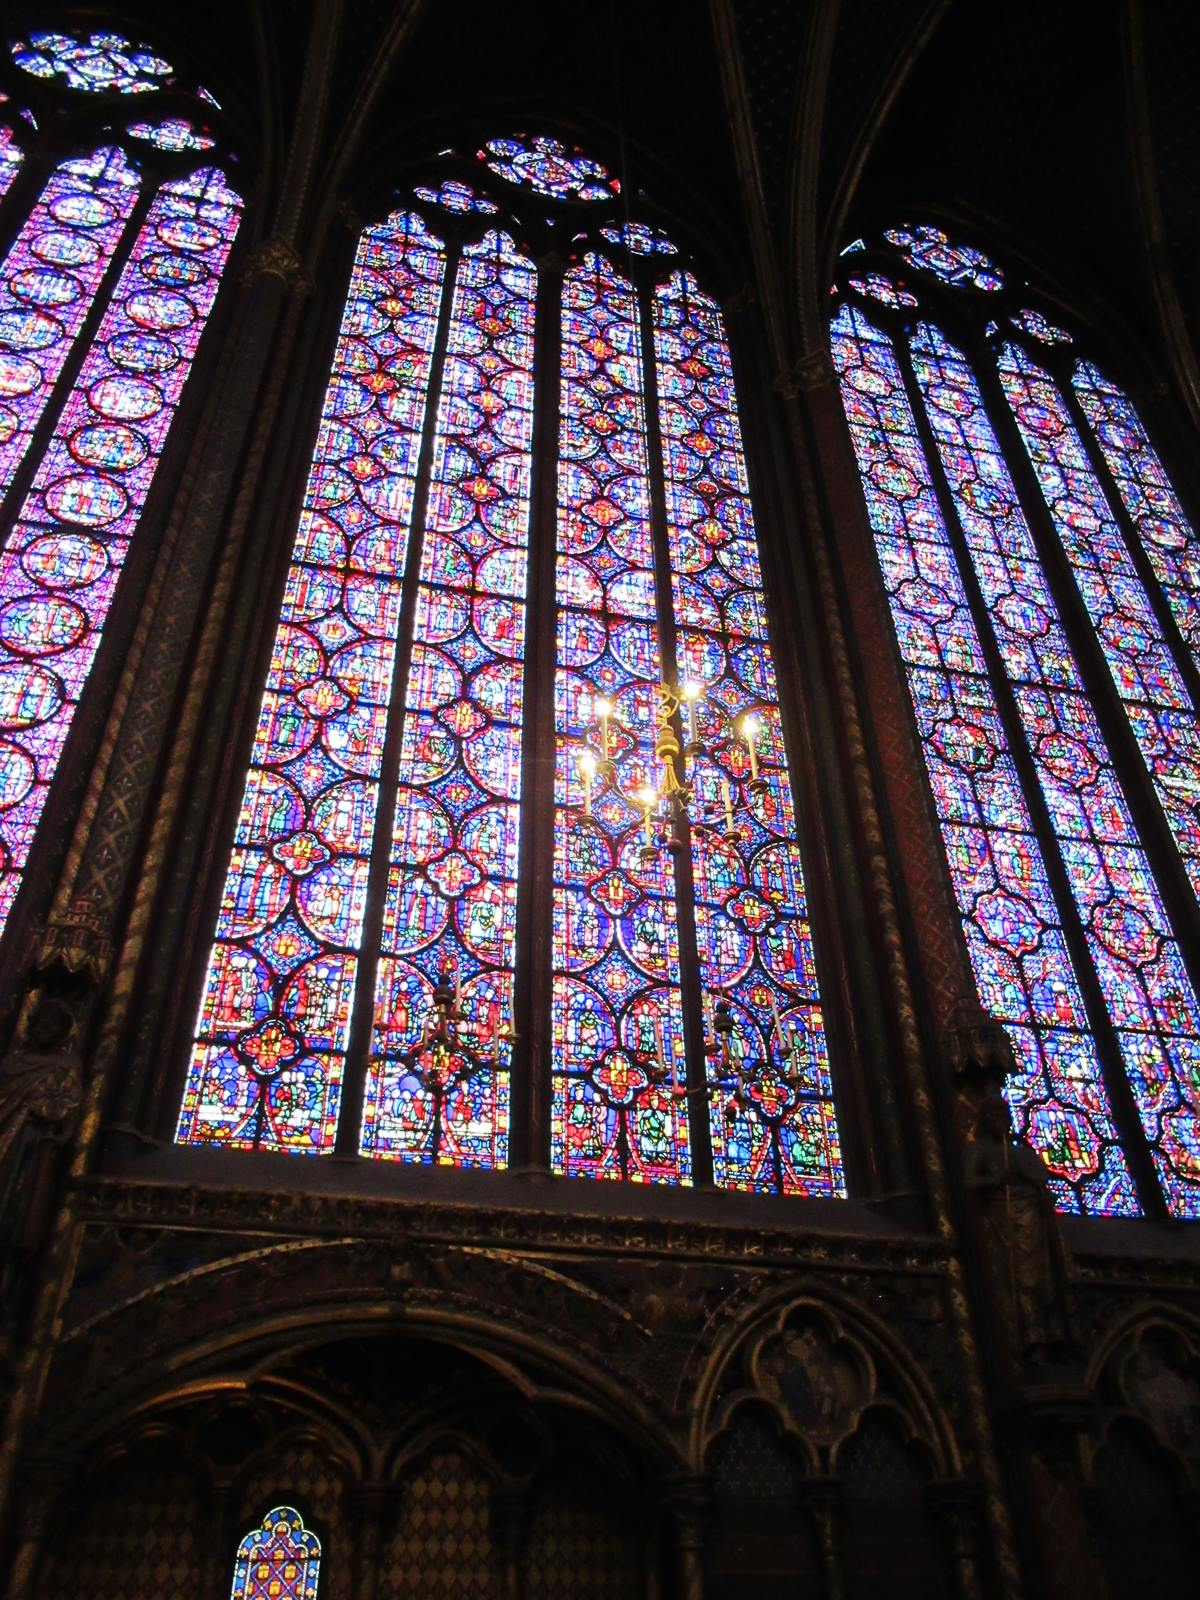 La sainte chapelle paris cite chateletsainte chapelle paris 5